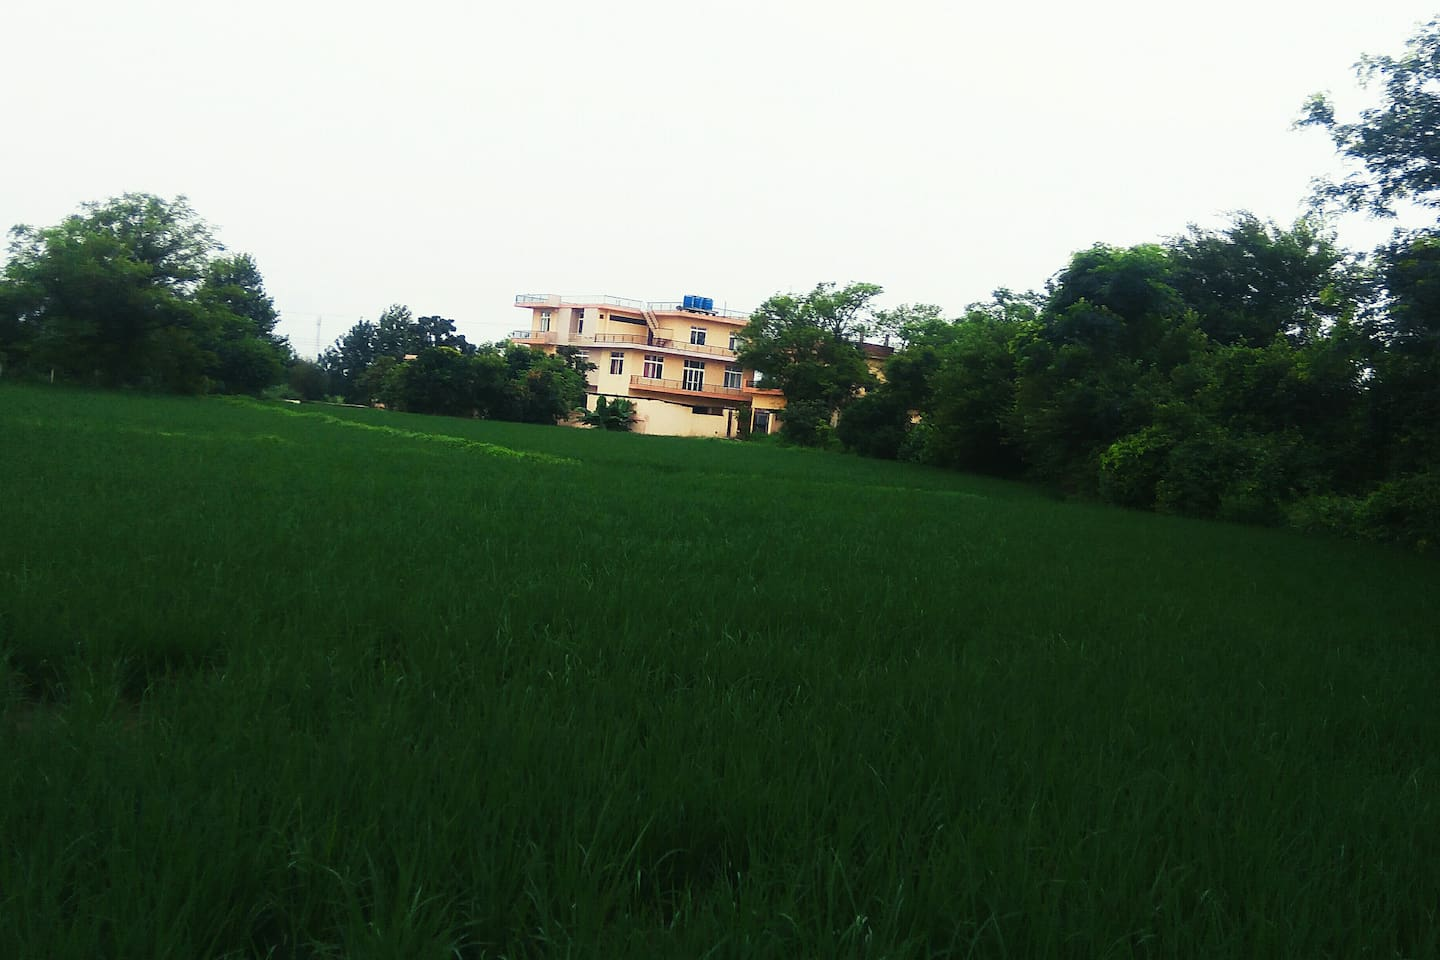 Outside view of Saini Farm House from nearby field. Building is situated in 35 Acre Agri Farm in Village Khalidpur 3.5 Kms from Ropar. Best for peaceful stay.